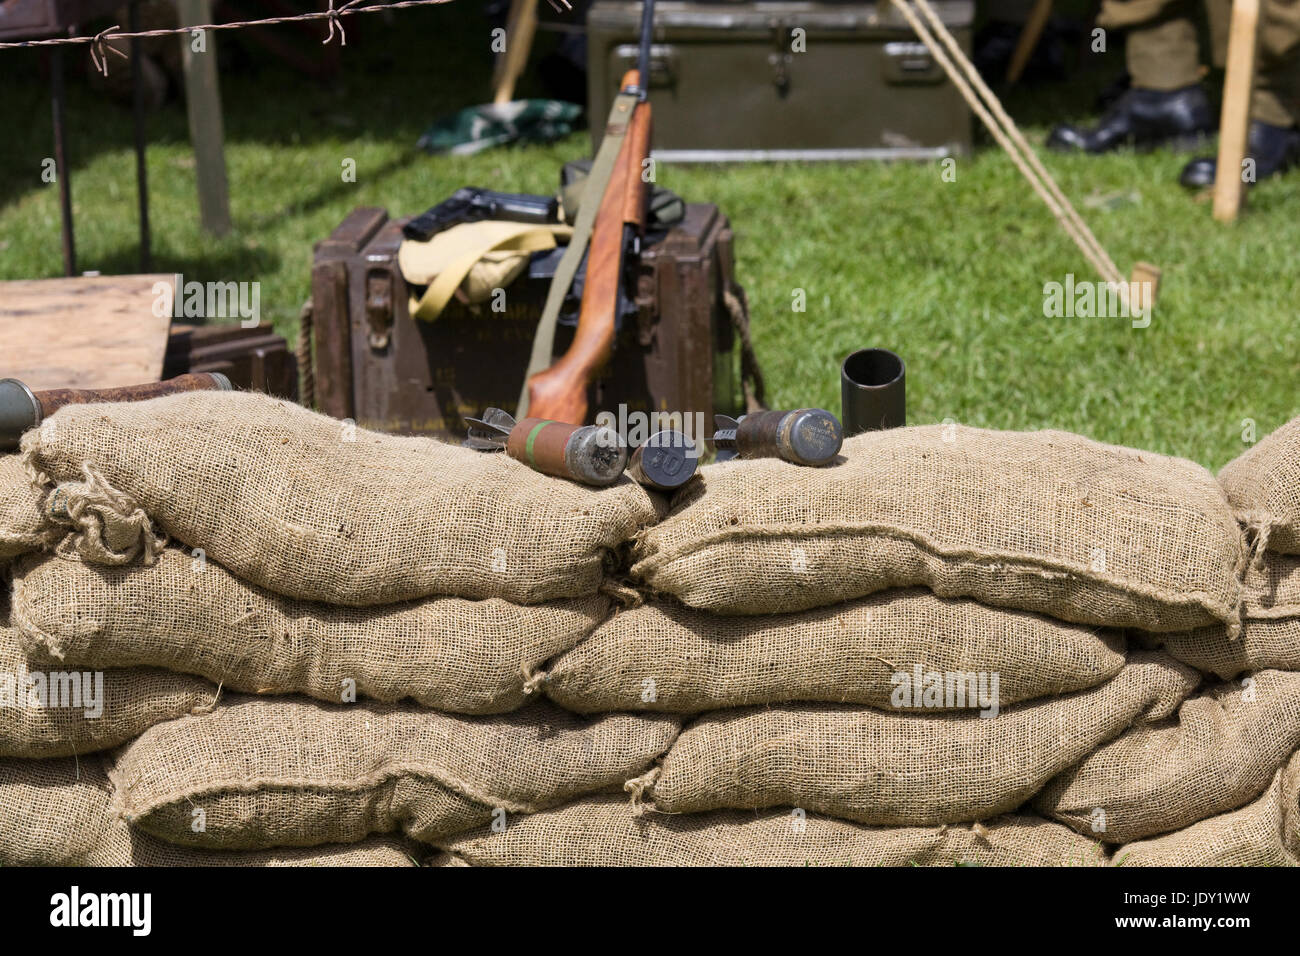 Sandbag Bunker with barbed wire with a riffle and grenades - Stock Image